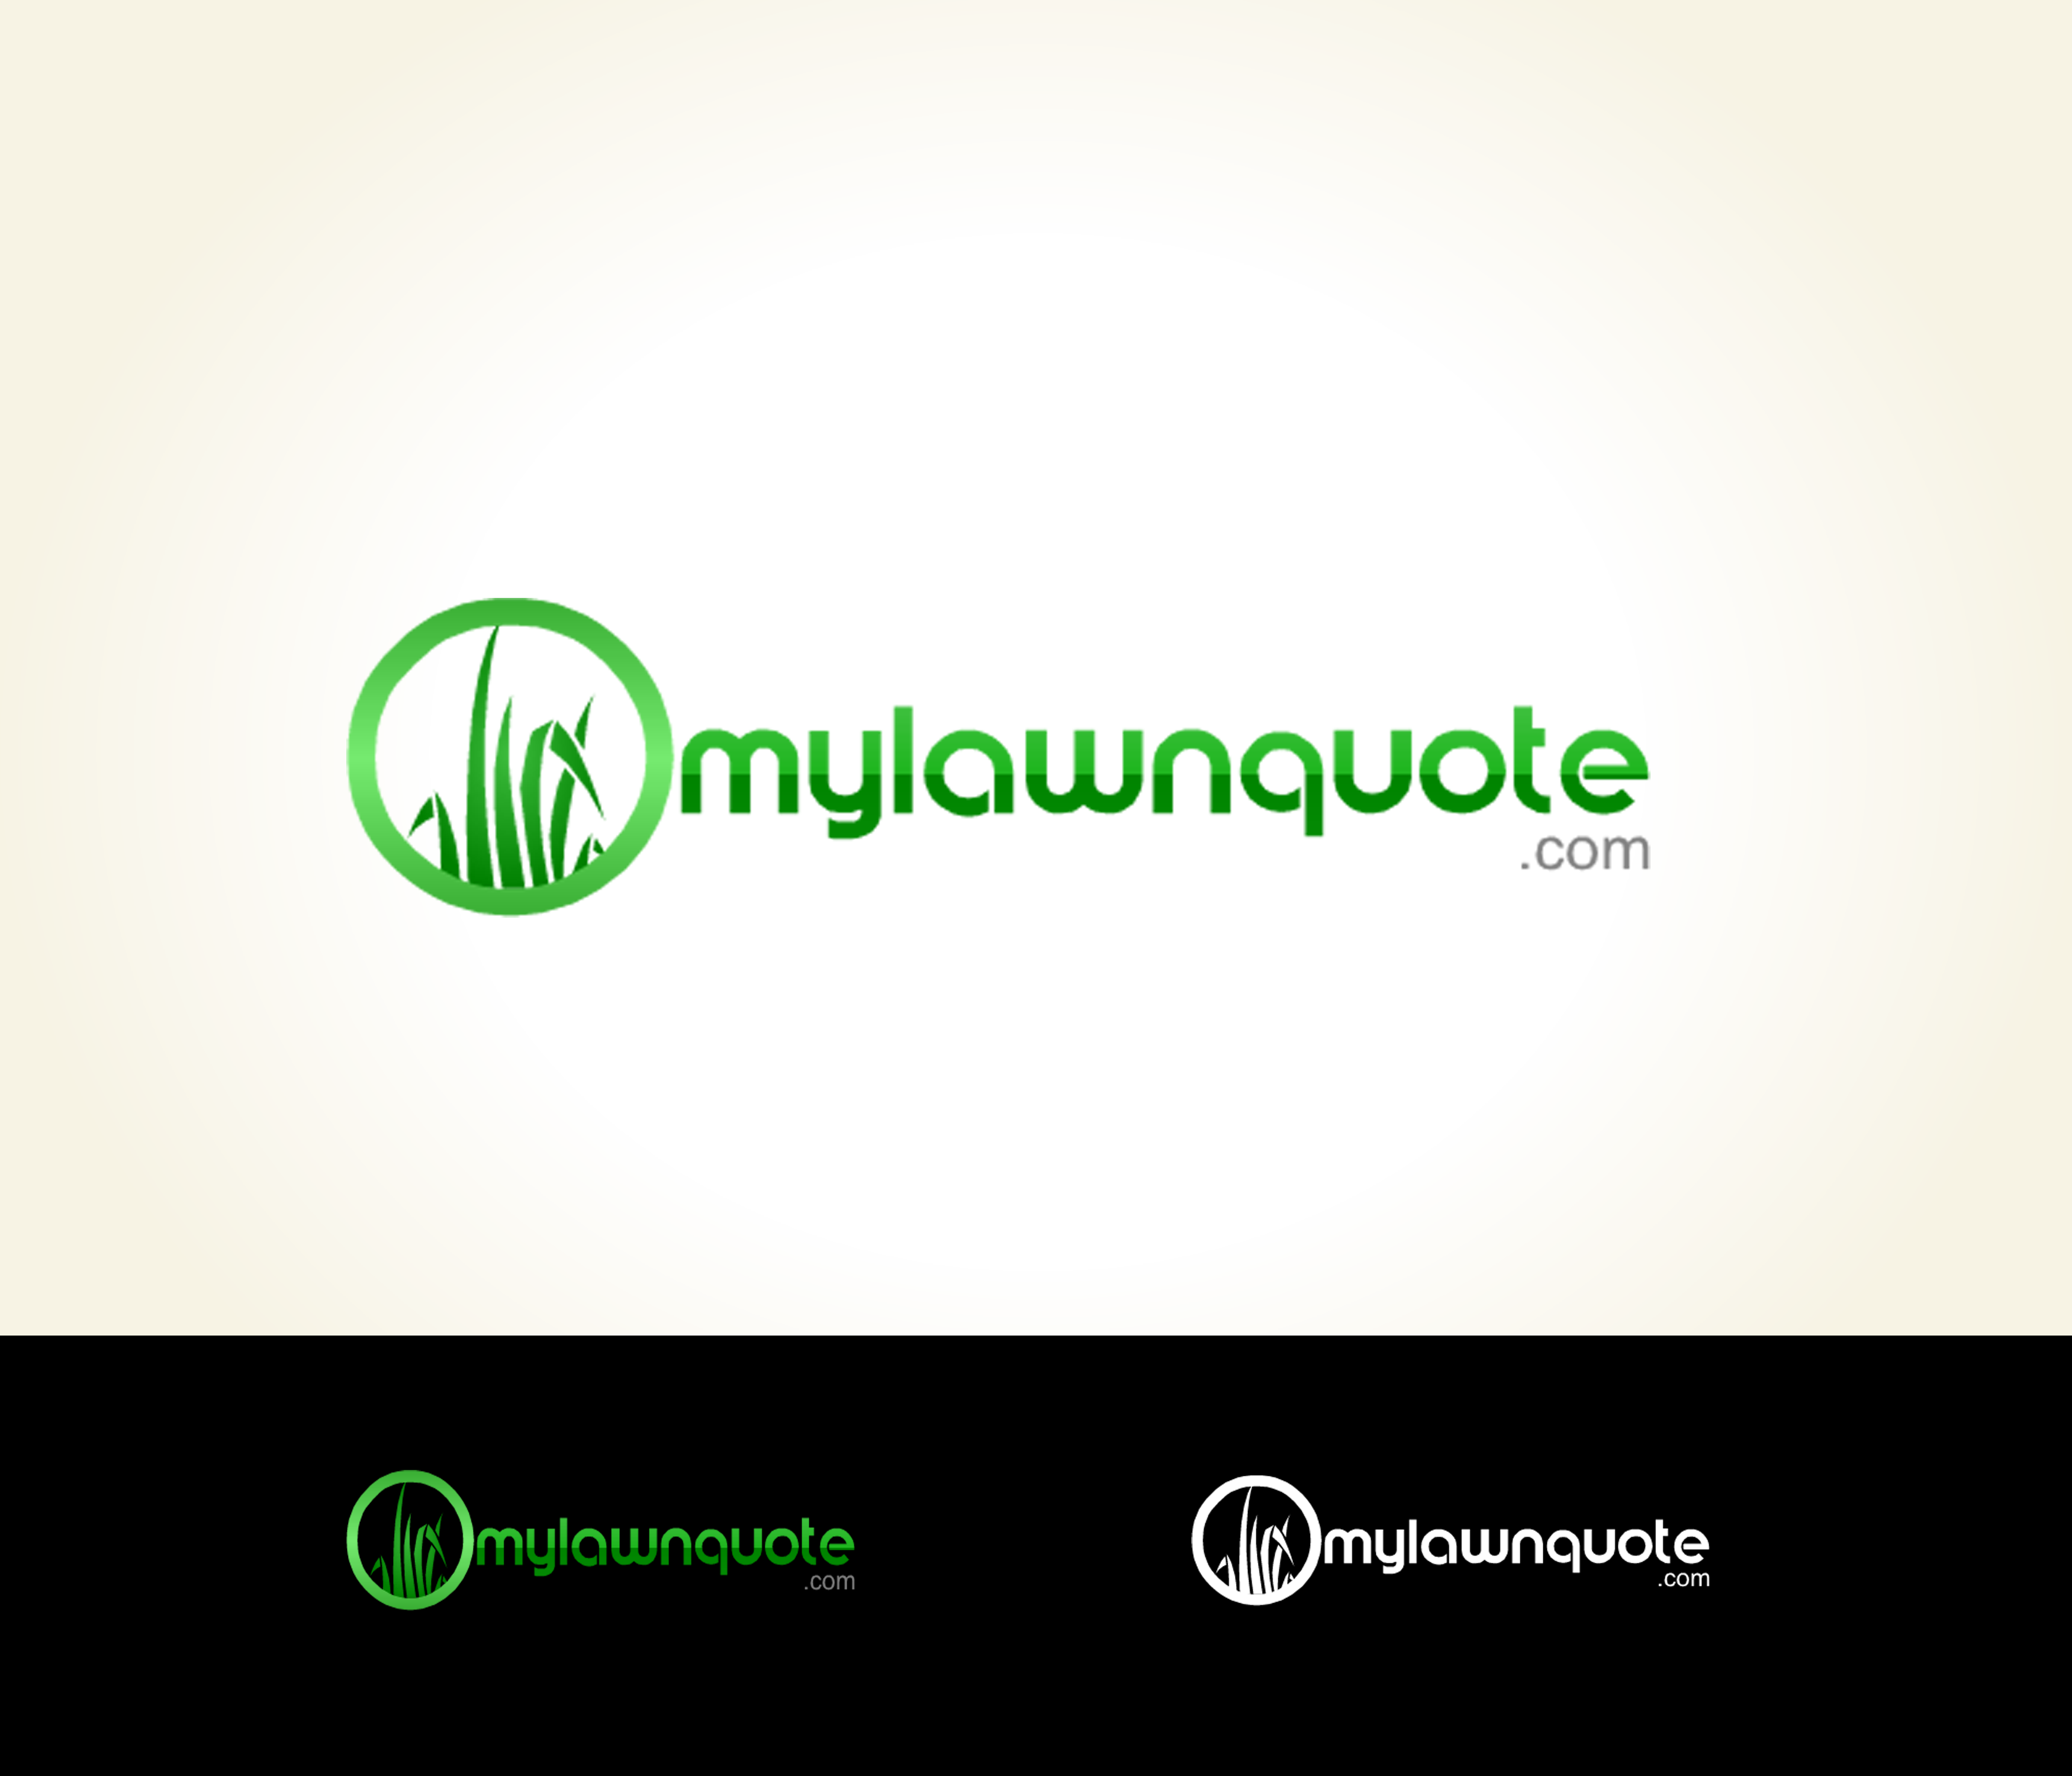 Logo Design by Lara Puno - Entry No. 6 in the Logo Design Contest Logo Design Needed for Exciting New Company mylawnquote.com.